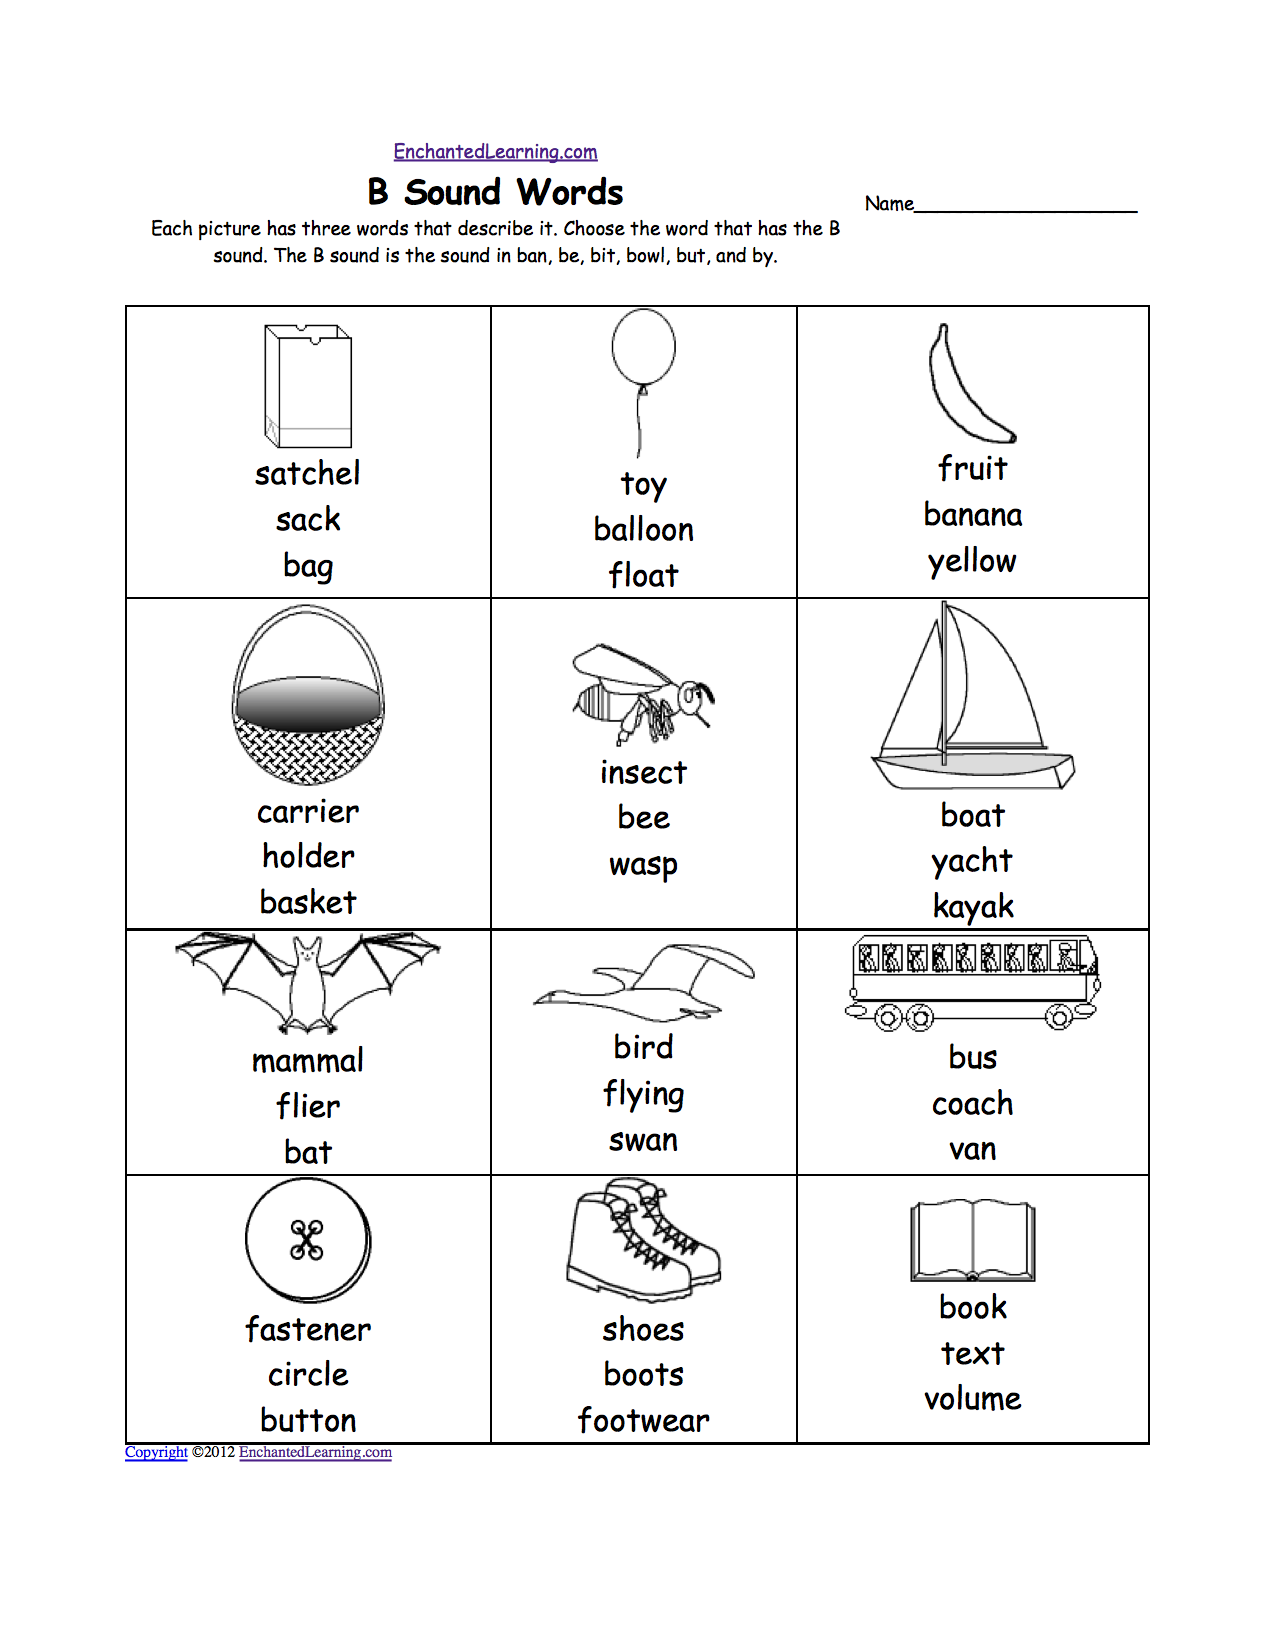 Aldiablosus  Terrific Phonics Worksheets Multiple Choice Worksheets To Print  With Likable Quotbquot Sound Phonics Worksheet Multiple Choice Each Picture Has Three Words That Describe It Choose The Word That Has A Quotbquot Sound The Quotbquot Sound Is The Sound  With Delightful Qualified Dividends Tax Worksheet Also Author Purpose Worksheets In Addition Customer Service Worksheets And Interpreting Solubility Curves Worksheet Answers As Well As Al Anon Step  Worksheet Additionally Free Printable Rd Grade Reading Worksheets From Enchantedlearningcom With Aldiablosus  Likable Phonics Worksheets Multiple Choice Worksheets To Print  With Delightful Quotbquot Sound Phonics Worksheet Multiple Choice Each Picture Has Three Words That Describe It Choose The Word That Has A Quotbquot Sound The Quotbquot Sound Is The Sound  And Terrific Qualified Dividends Tax Worksheet Also Author Purpose Worksheets In Addition Customer Service Worksheets From Enchantedlearningcom